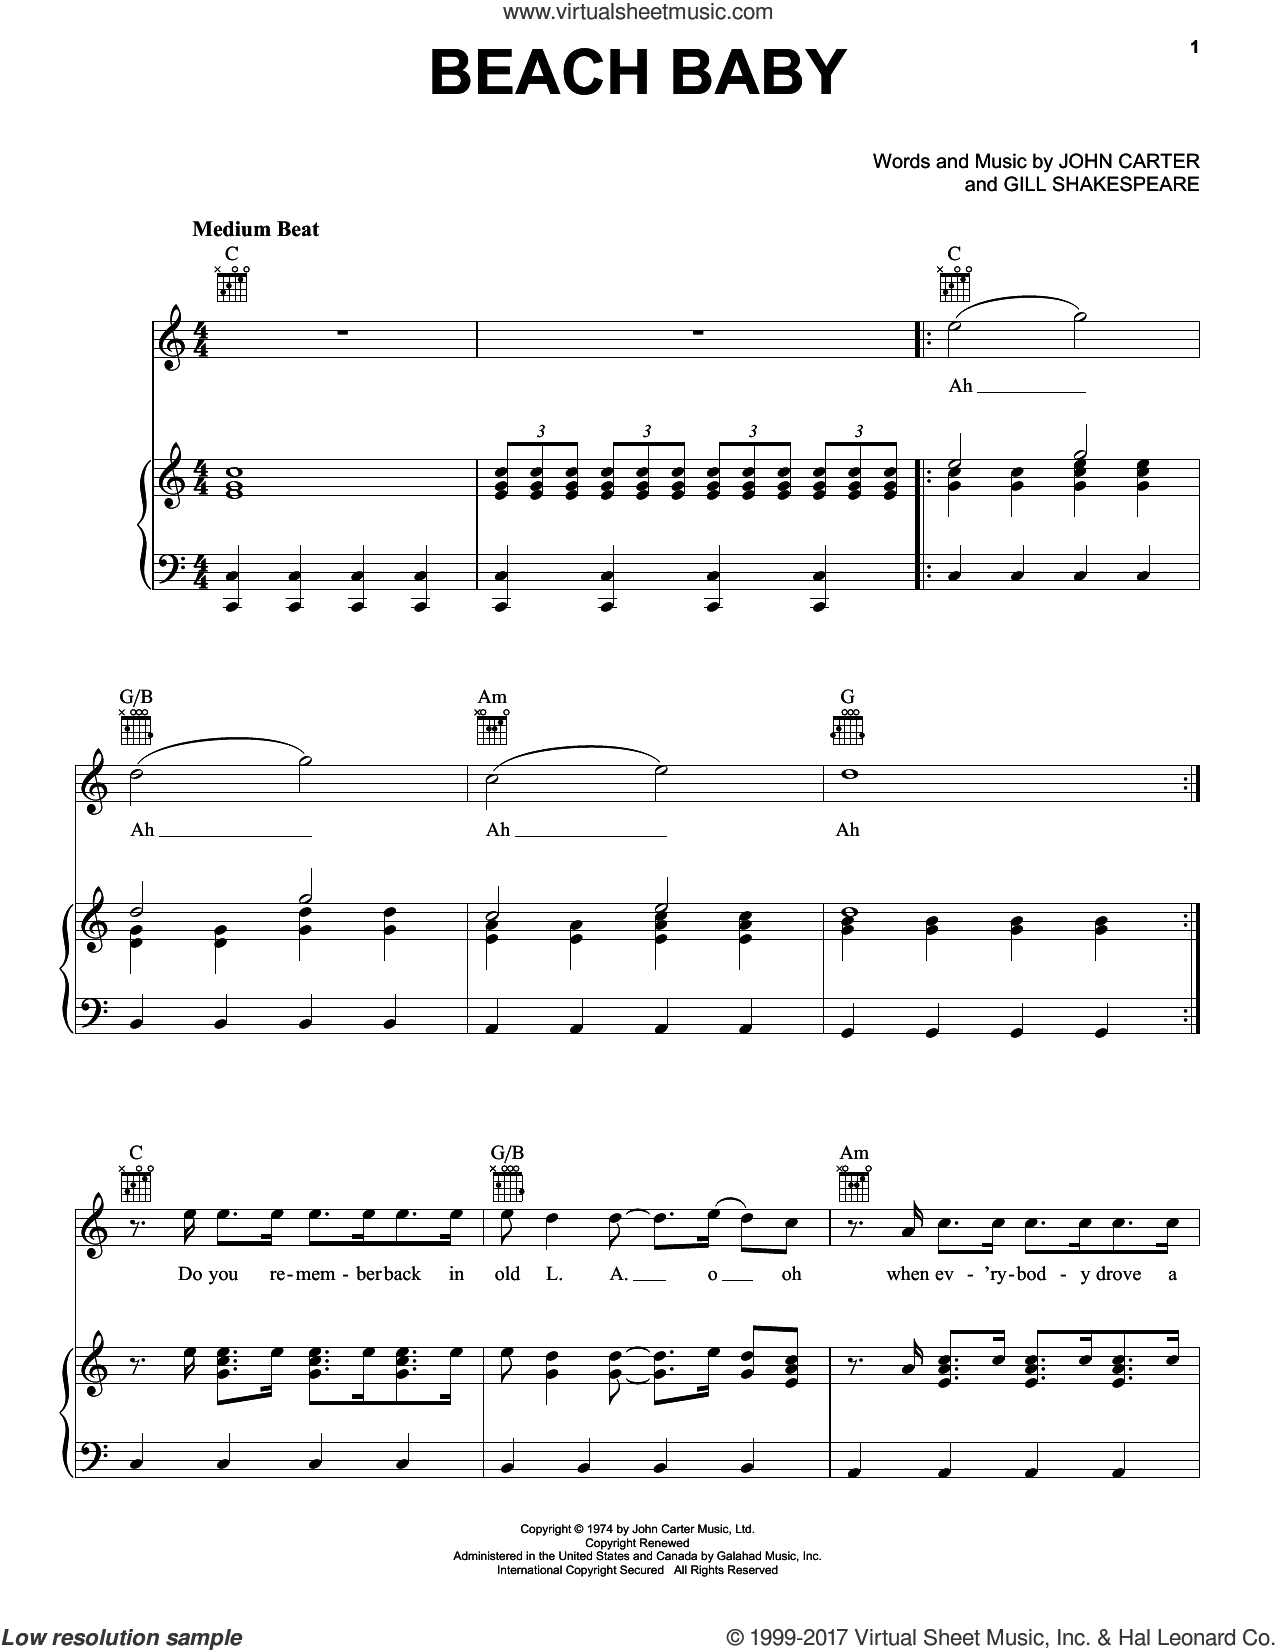 Beach Baby sheet music for voice, piano or guitar by John Carter. Score Image Preview.